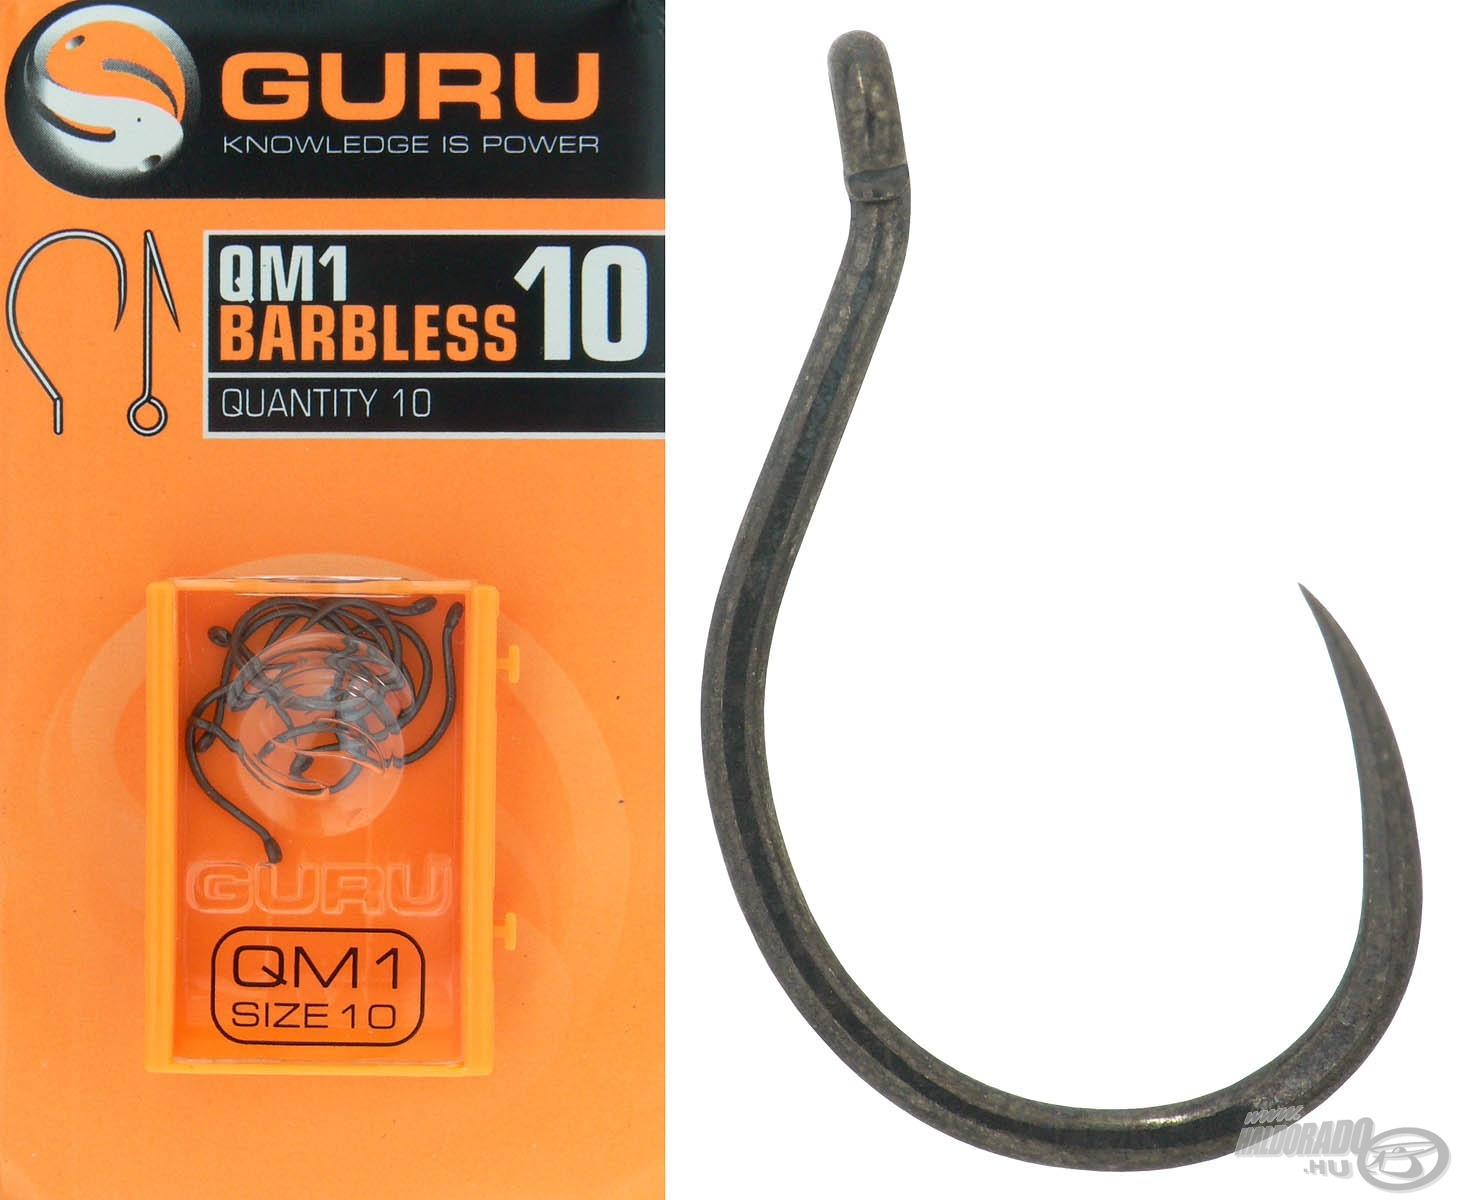 GURU, QM1 Barbless - 10